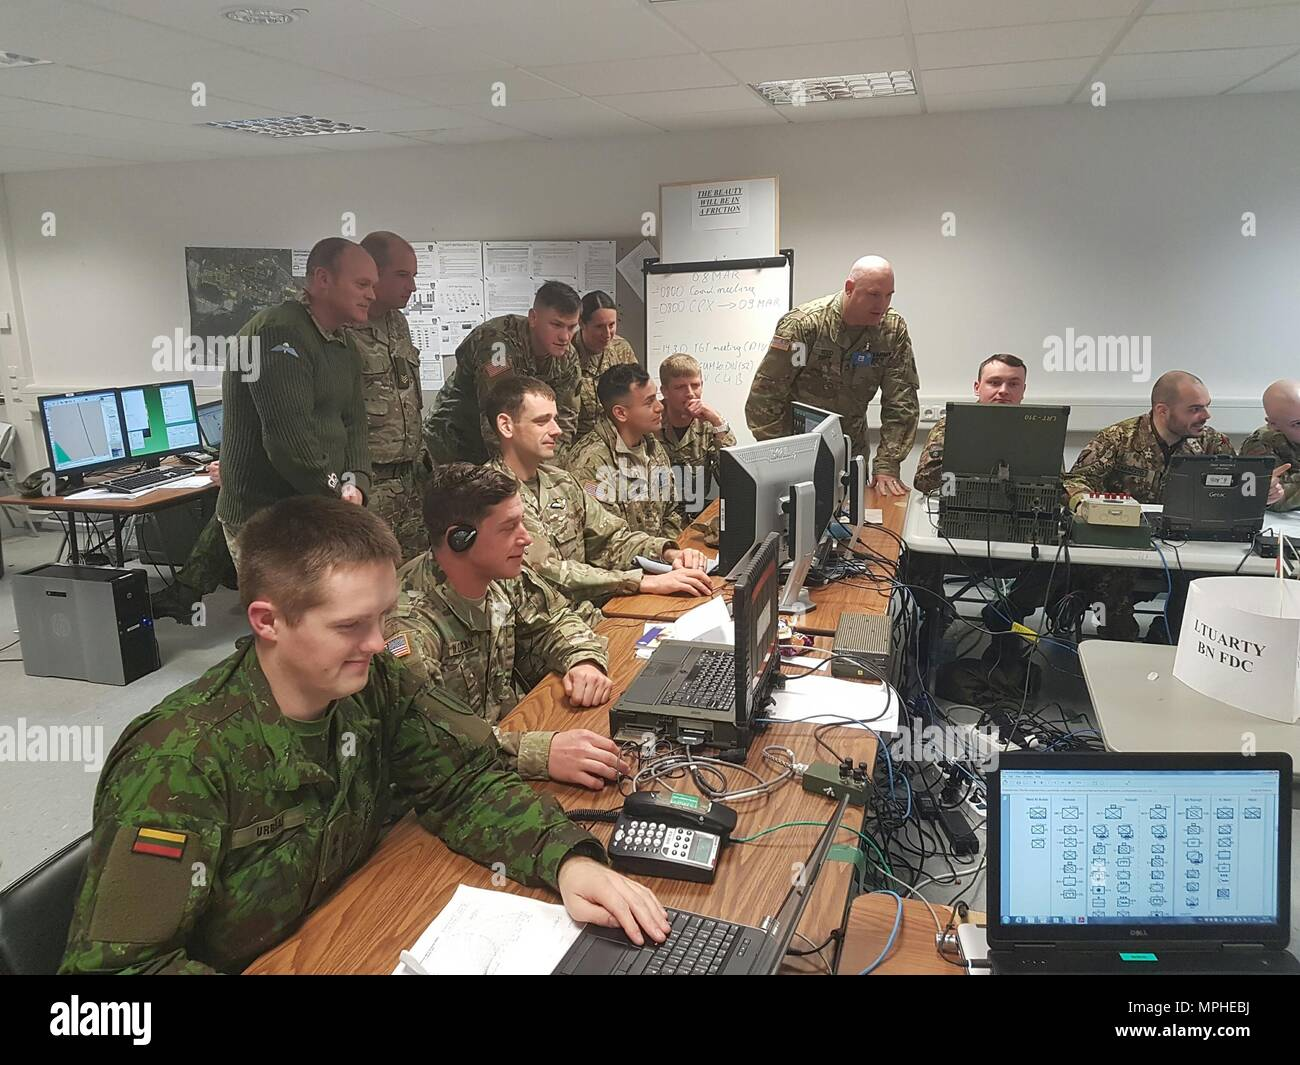 Soldiers of the 2500th and 250th Digital Liaison Detachments work with NATO allies March 10 during the multinational exercise Dynamic Front II in their Tactical Operations Center at Grafenwoehr, Germany. (Photo courtesy 2500th Digital Liaison Detachment) - Stock Image